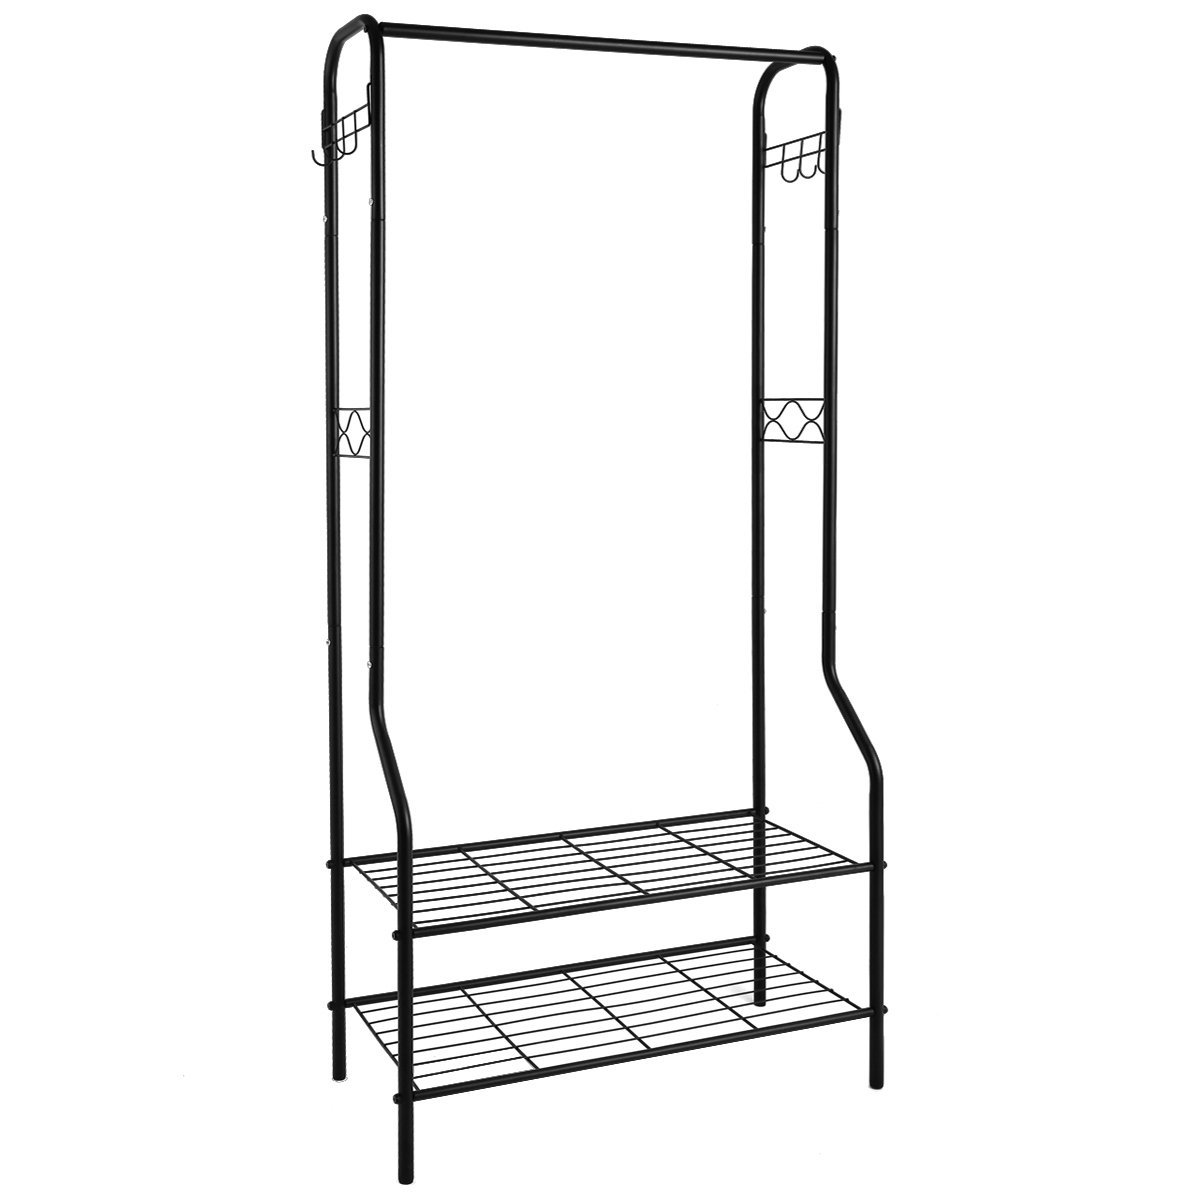 TomCare Clothes Rack Clothing Rack Garment Rack, 2-Tier Storage Shelves Shoe Bench Organizer Commercial Grade Clothes Hanging Rack with 6 Hooks Coat Rack for Home Office Entryway Bedroom Metal Black